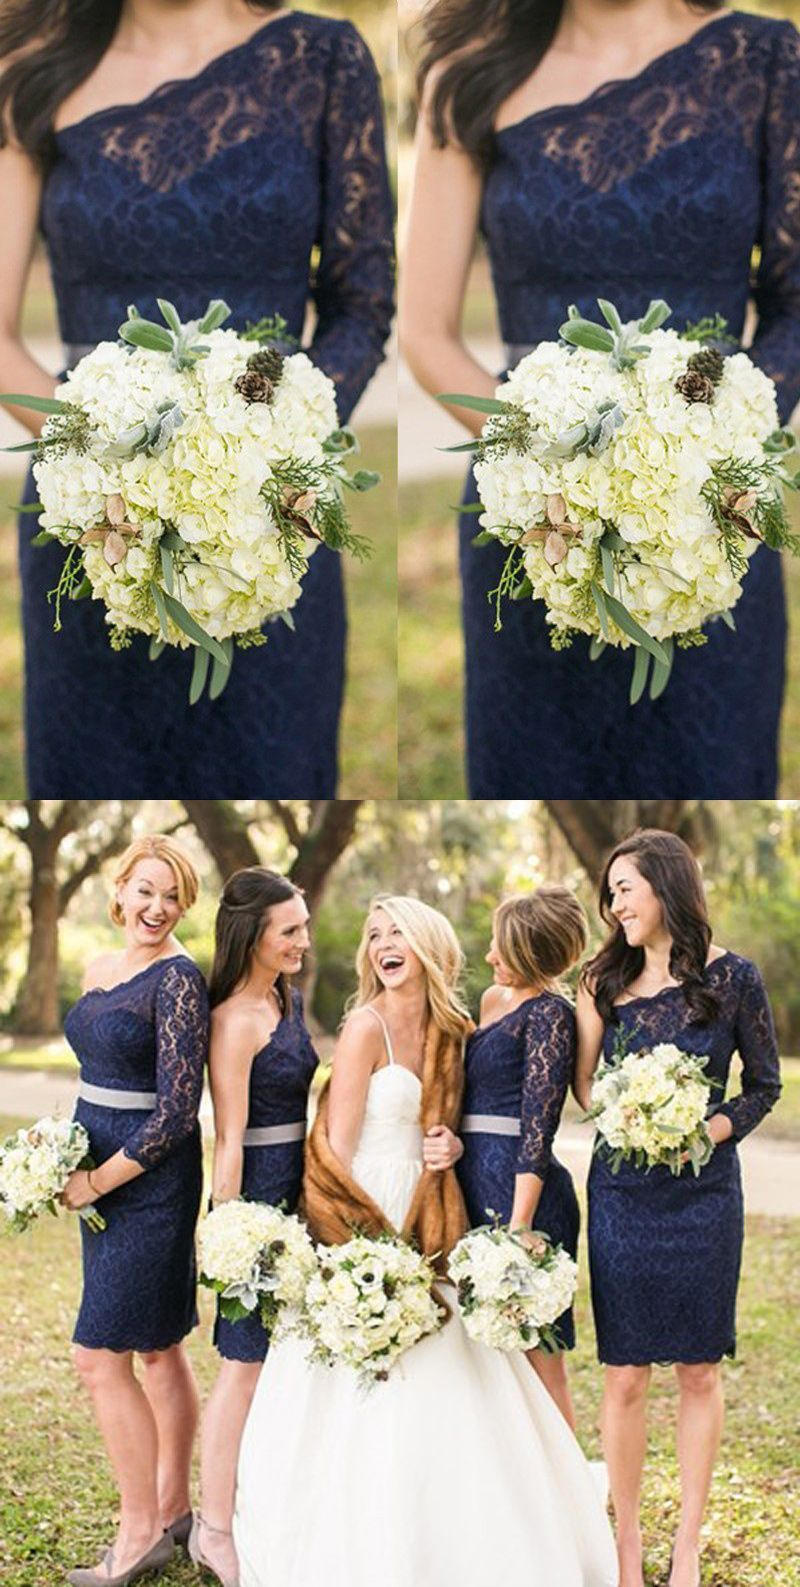 Short bridesmaid dresses navy blue bridesmaid dresses lace dresses